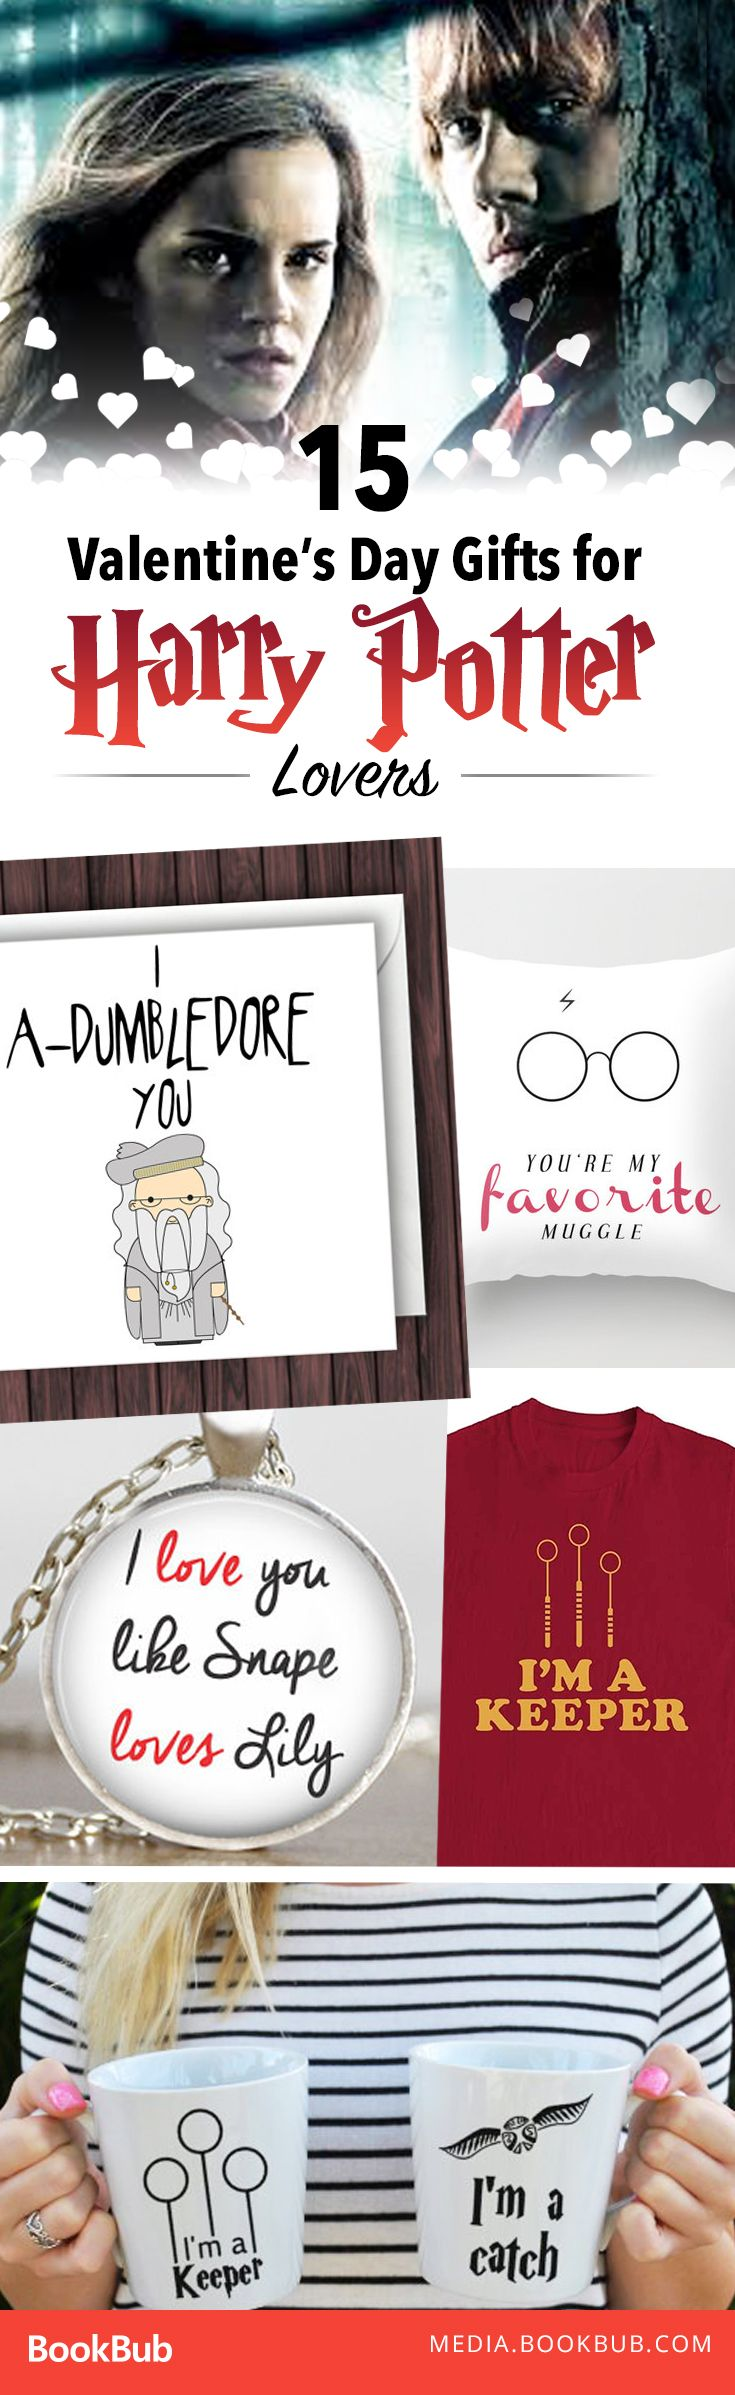 great valentines day gifts for him or her harry potter fans will go crazy over